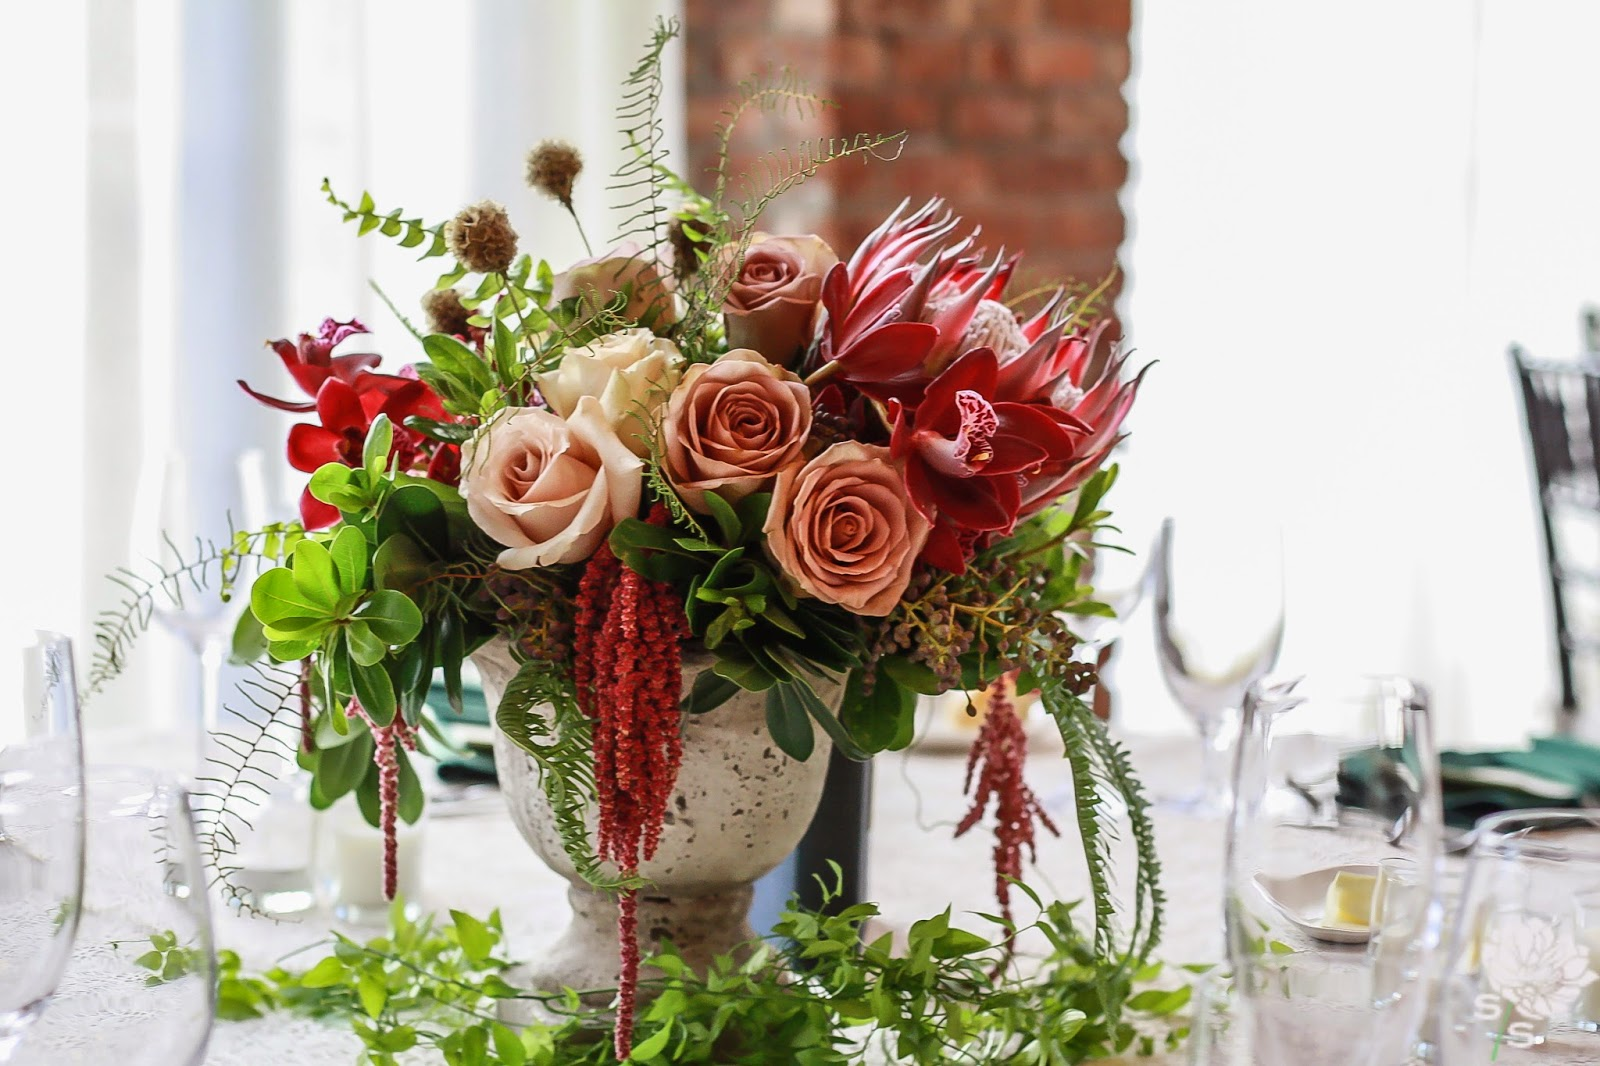 The Roundhouse Wedding - Beacon, NY - Hudson Valley Wedding - Table Centerpiece - Protea, Orchid, Amaranthus - Old Books - Wedding Flowers - Splendid Stems Floral Designs